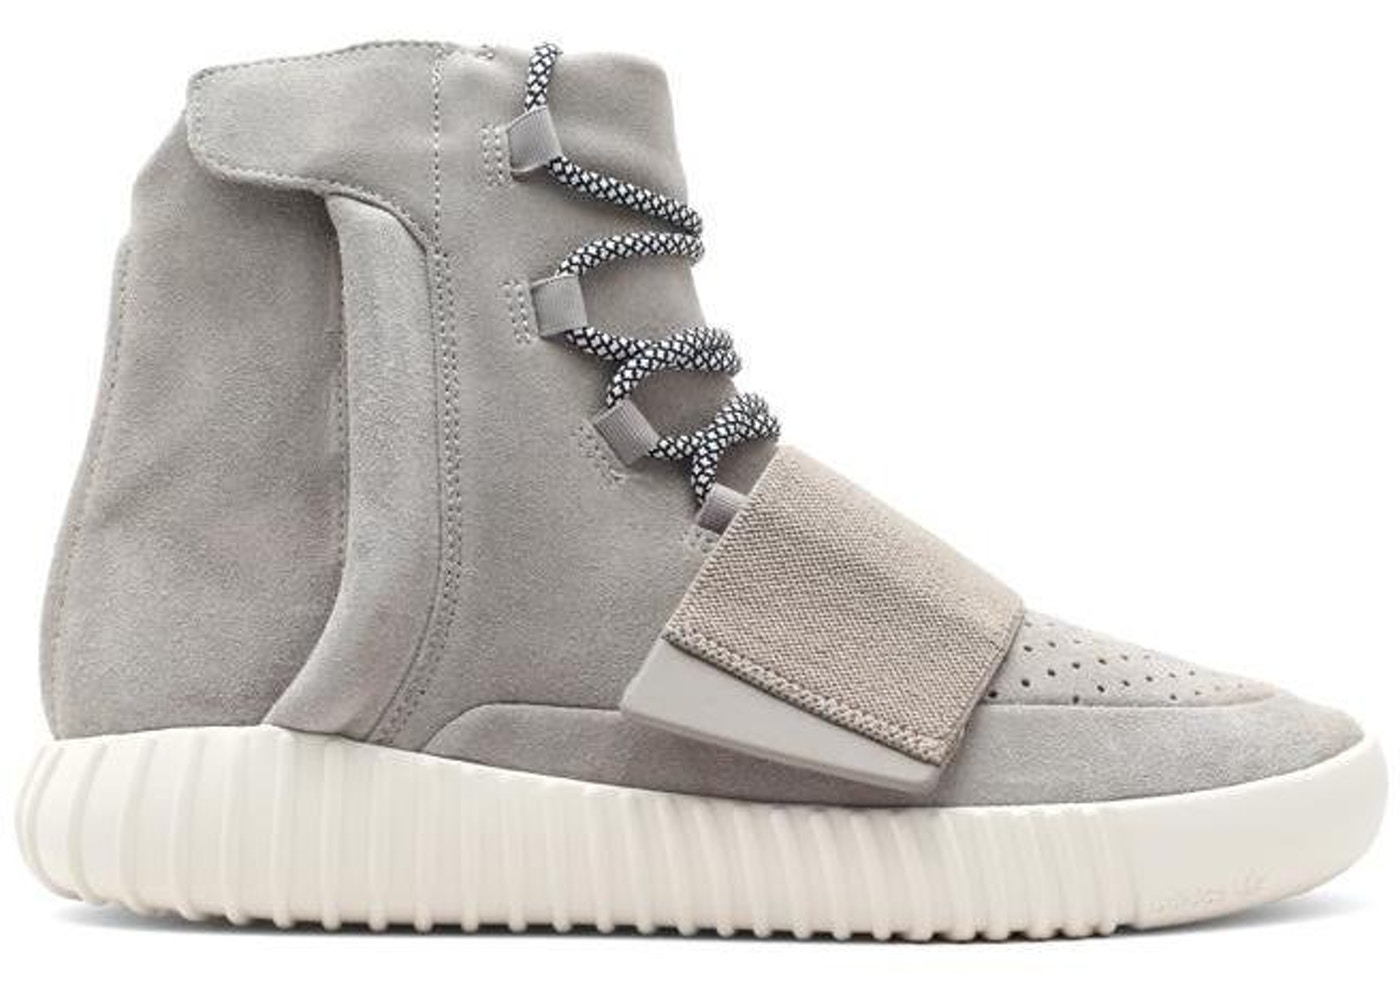 best service 1beff a6090 adidas Yeezy Shoes - Price Premium